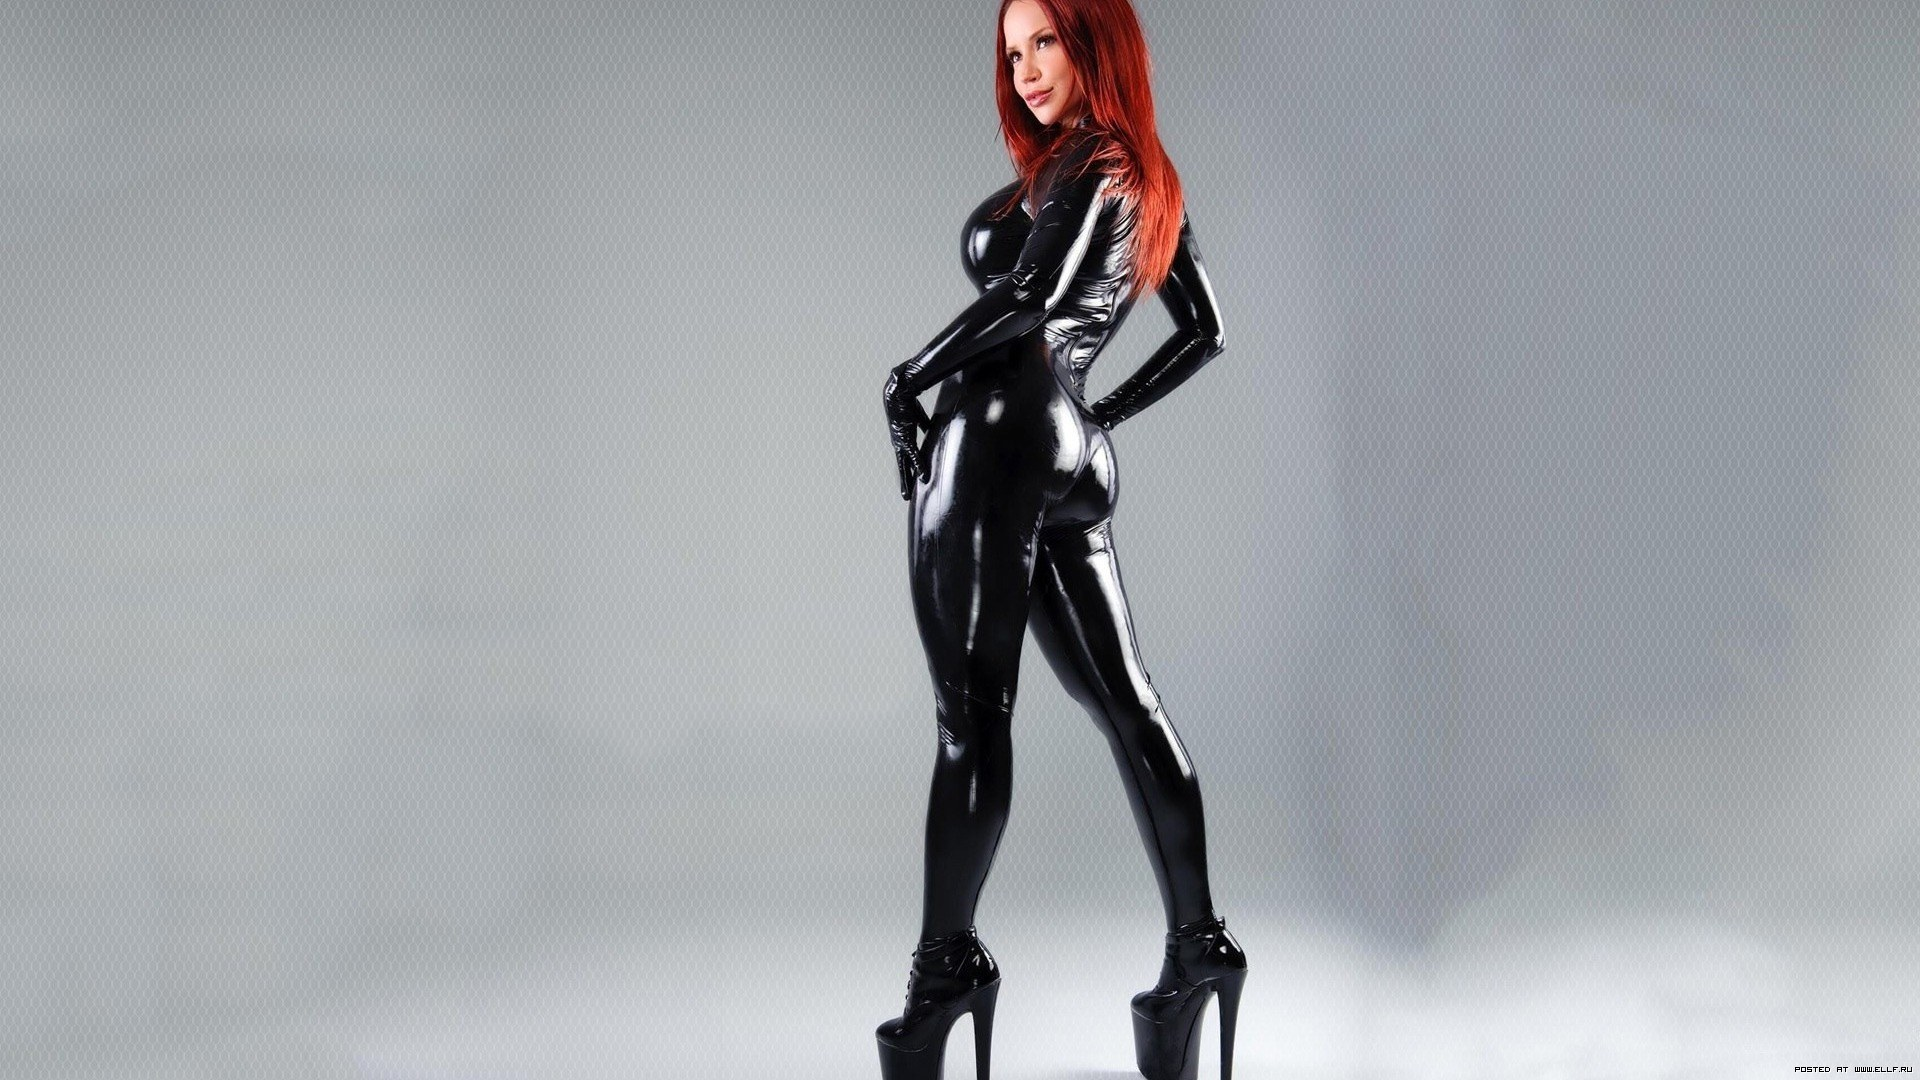 woman redheads Bianca Beauchamp HD Wallpaper